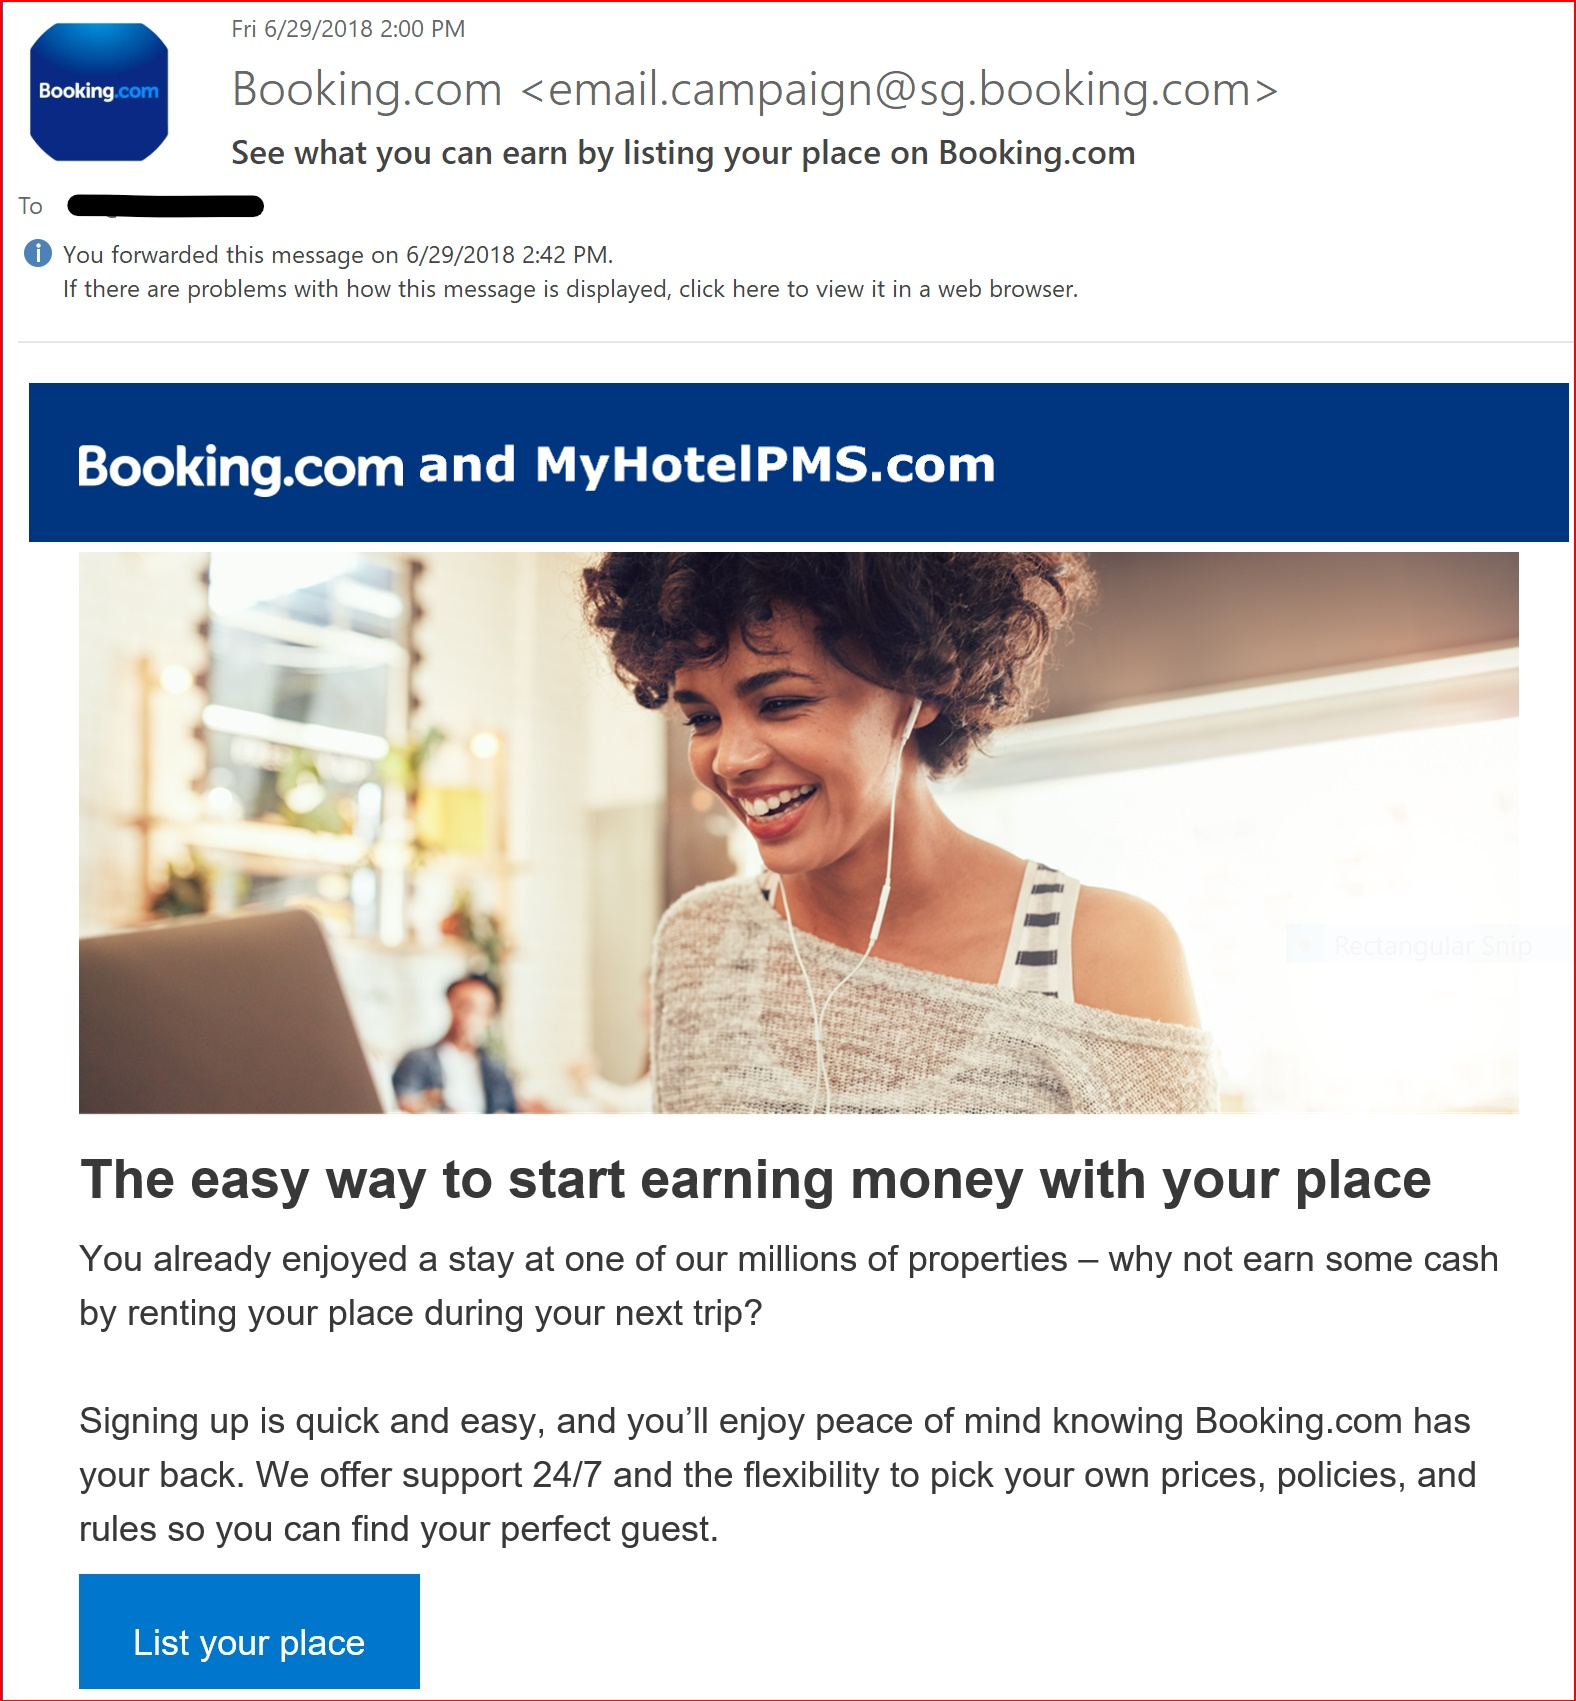 See what you can earn by listing your place on Booking.com MyHotelPMS.com by Bellebnb Hotel Direct Booking Management Software, You already enjoyed a stay at one of our millions of properties, why not earn some cash by renting your place during your next trip? Signing up is quick and easy, and you'll enjoy peace of mind knowing Booking.com and MyHotelPMS.com has your back. We offer support 24/7 and the flexibility to pick your own prices, policies, and rules so you can find your perfect guest Bellebnb Hotel Property Management System - A Better Way to Manage Your Hotel · Hostel · B&B · Vacation Rental.!